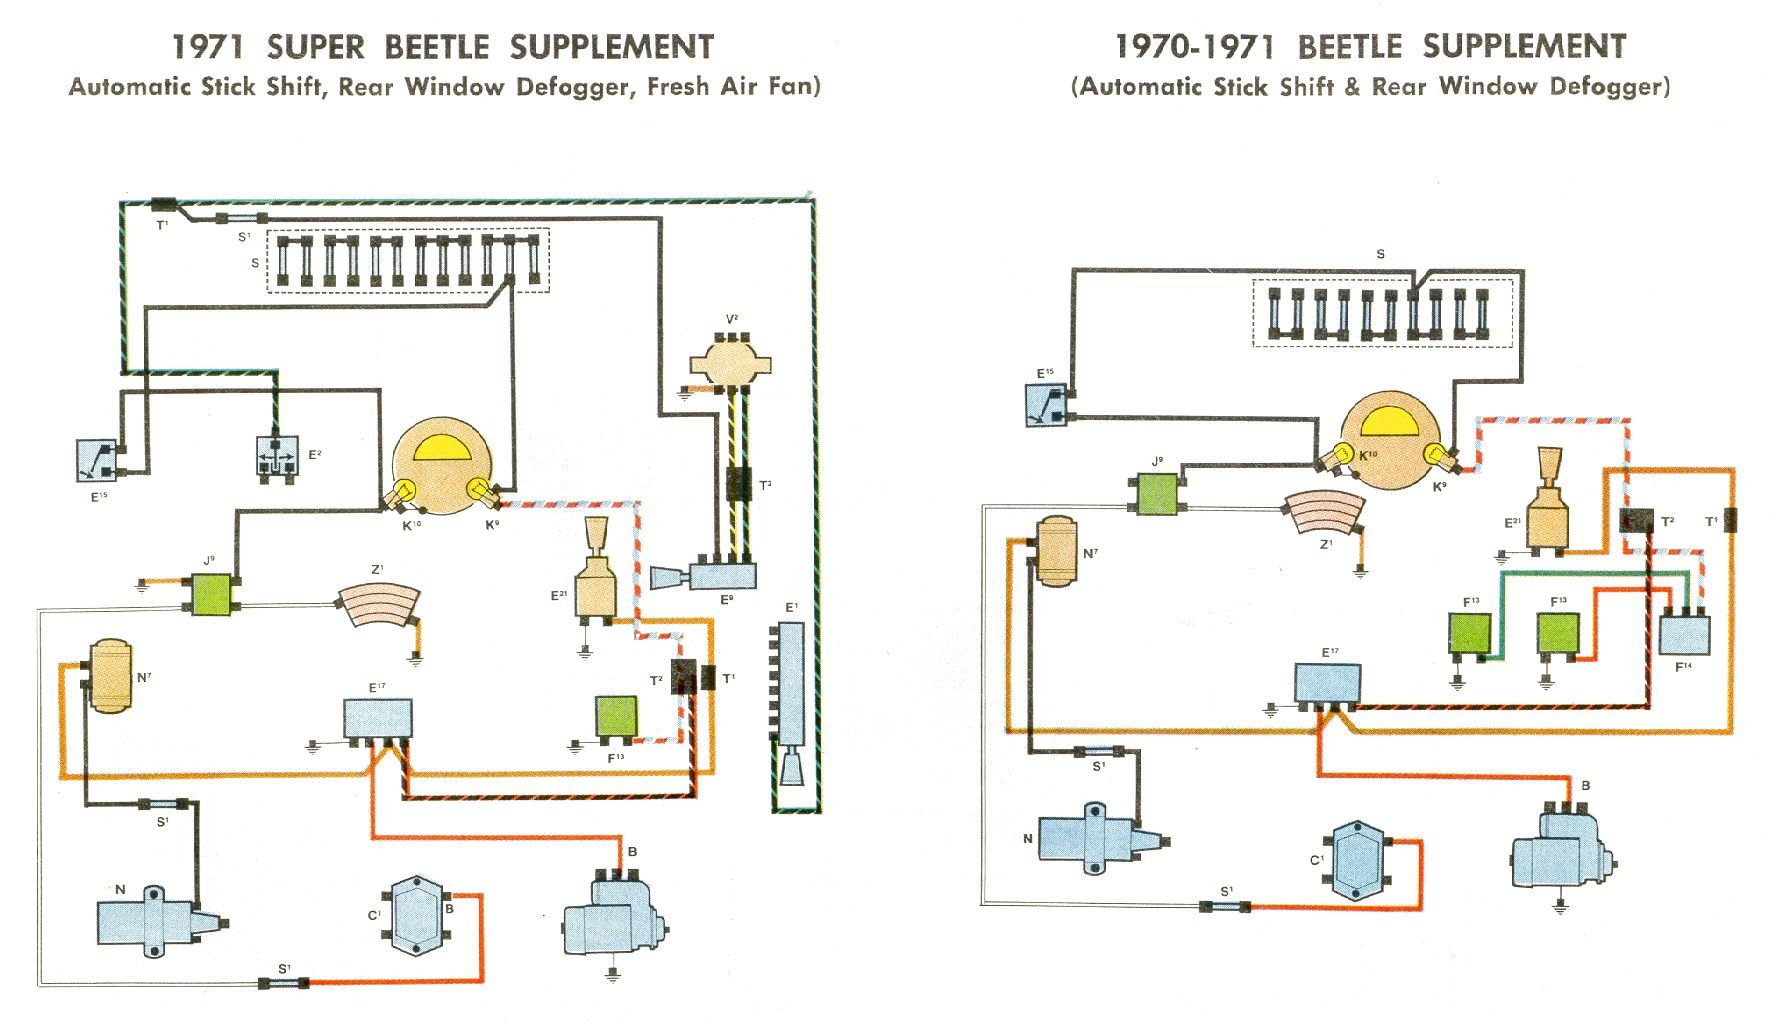 bug_7071_supplement 1969 71 beetle wiring diagram thegoldenbug com 1973 super beetle fuse box diagram at mr168.co